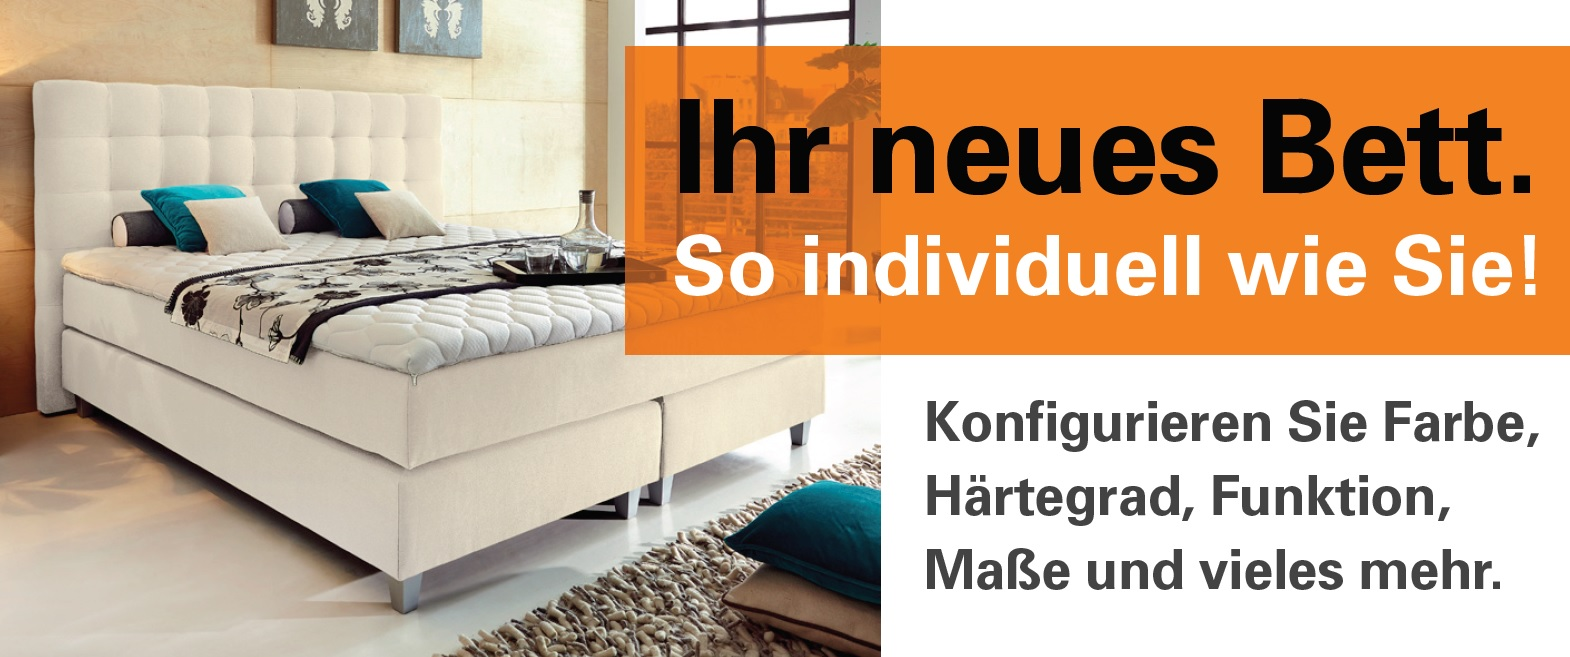 keyton massagesessel test und vergleich lidl massagesessel test. Black Bedroom Furniture Sets. Home Design Ideas